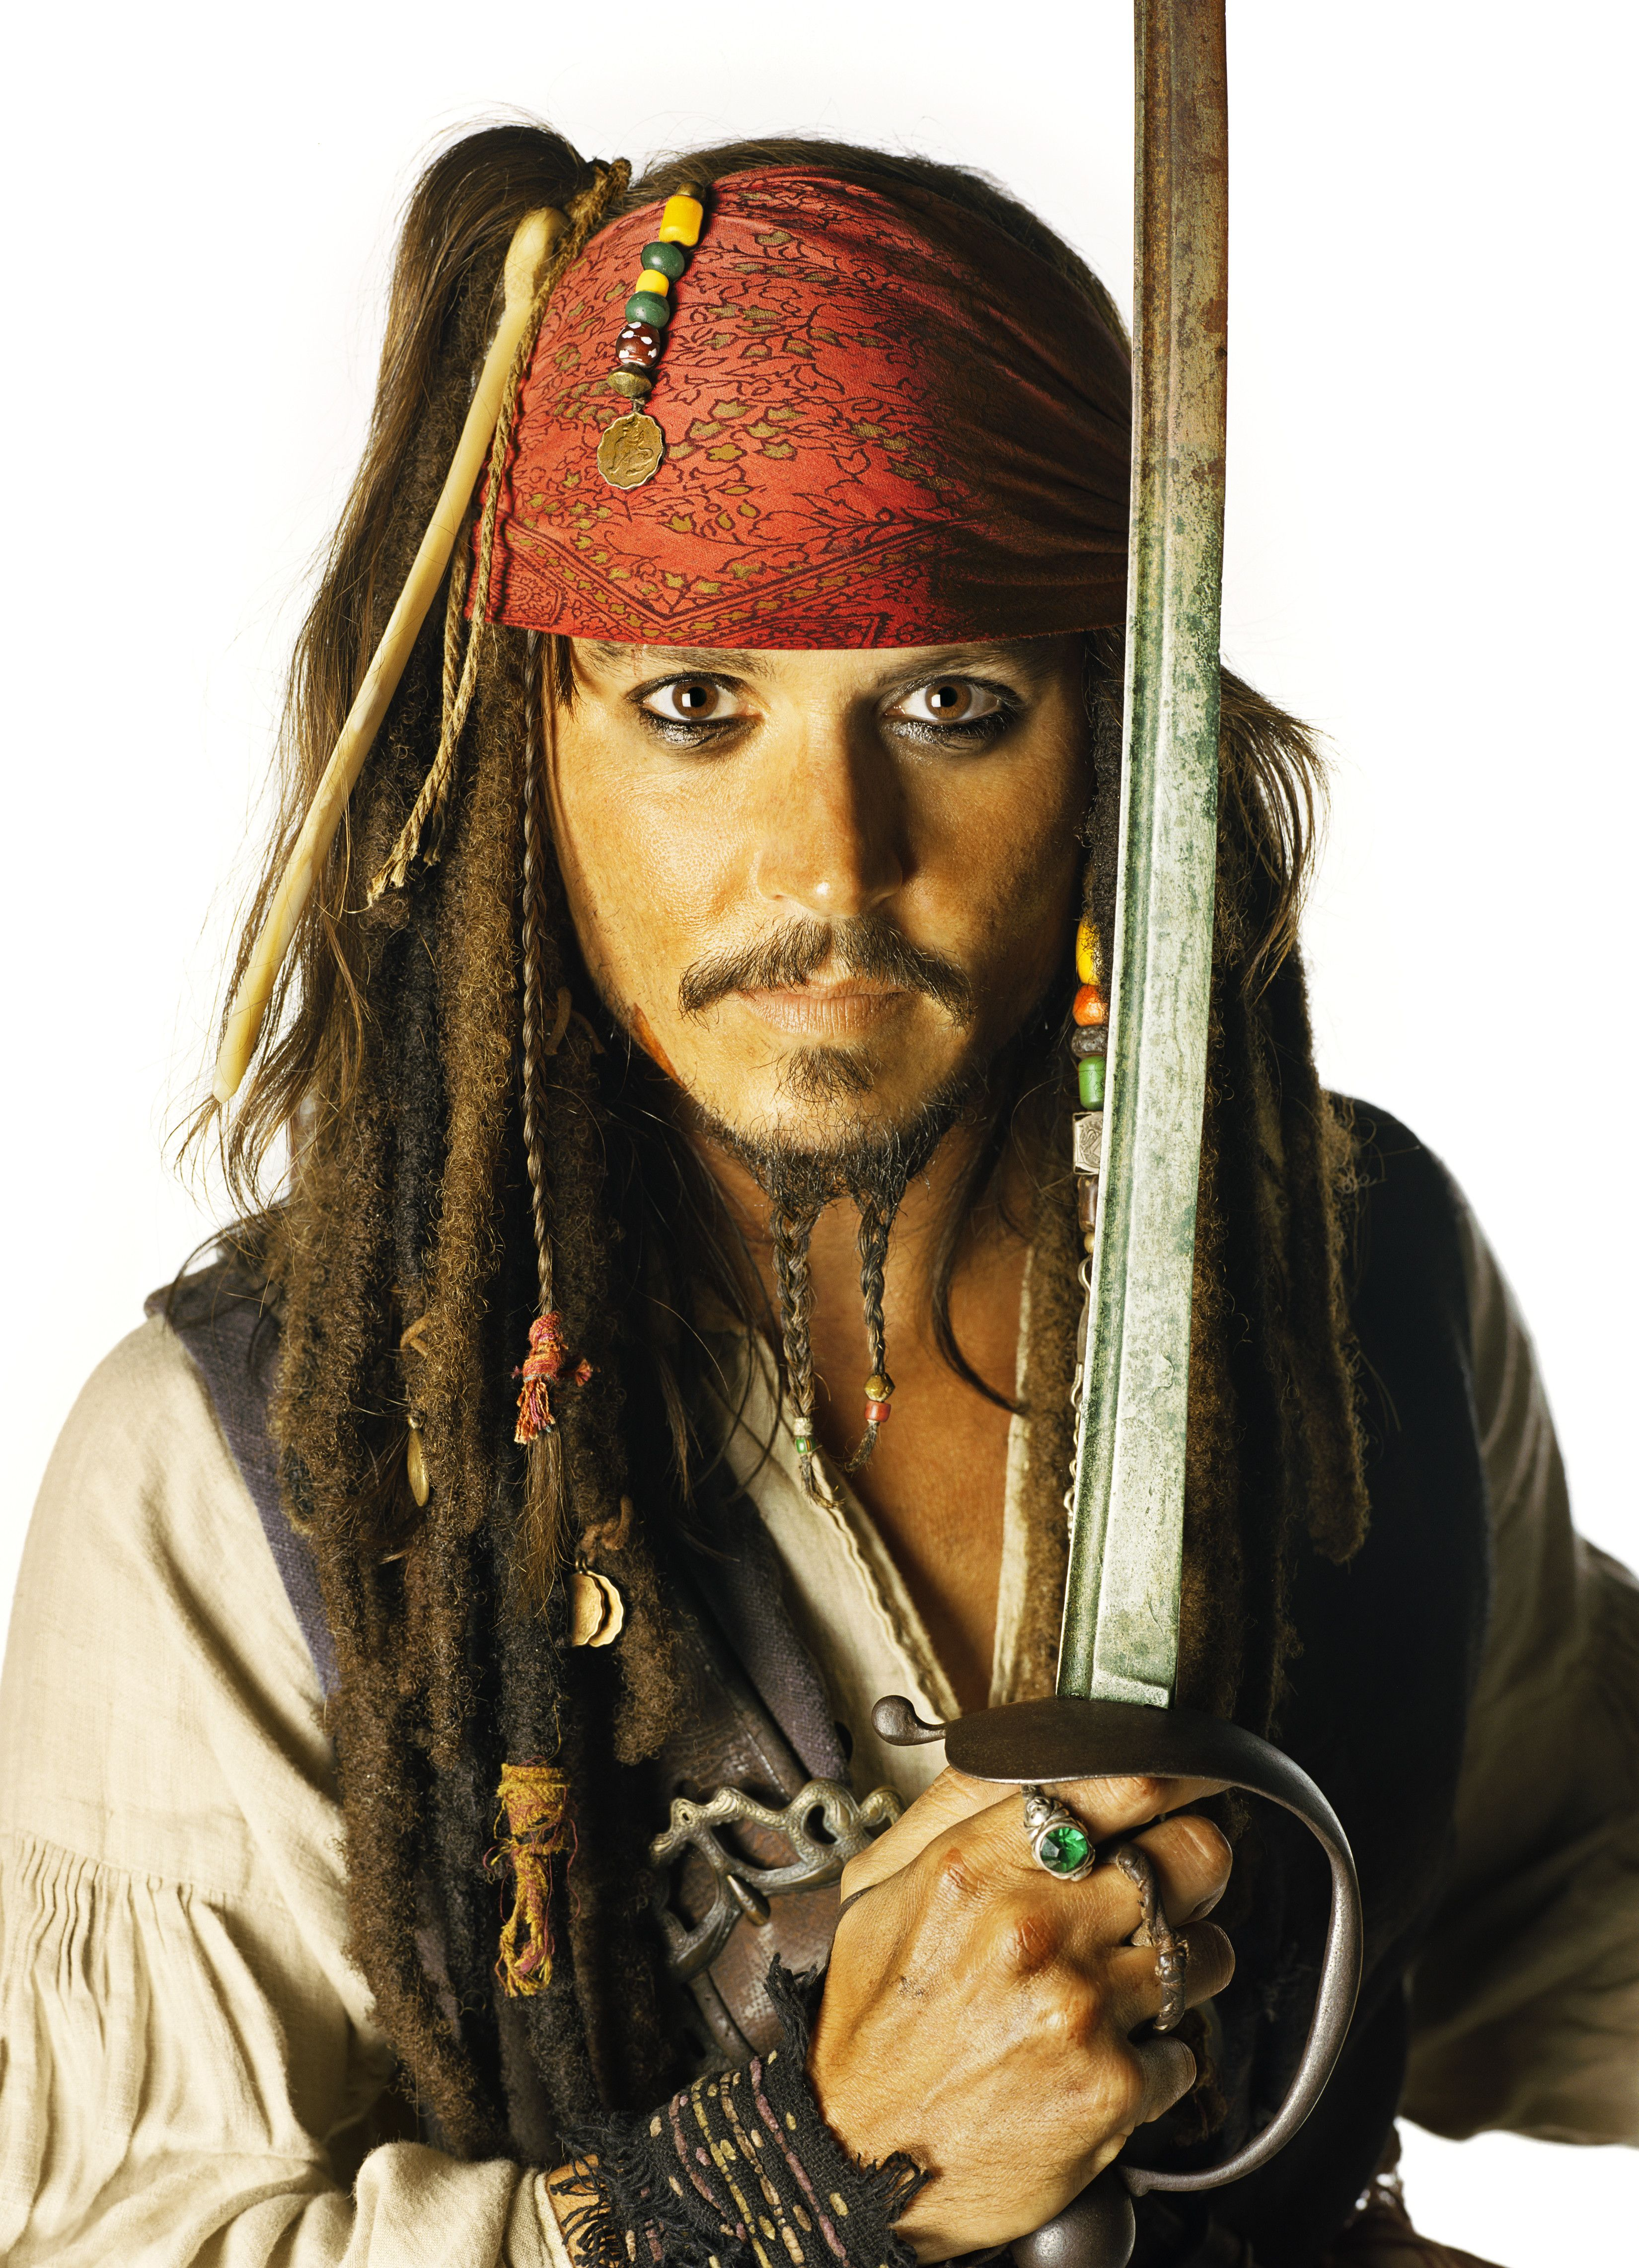 Captain Jack Sparrow Games for Android - Free downloads ...